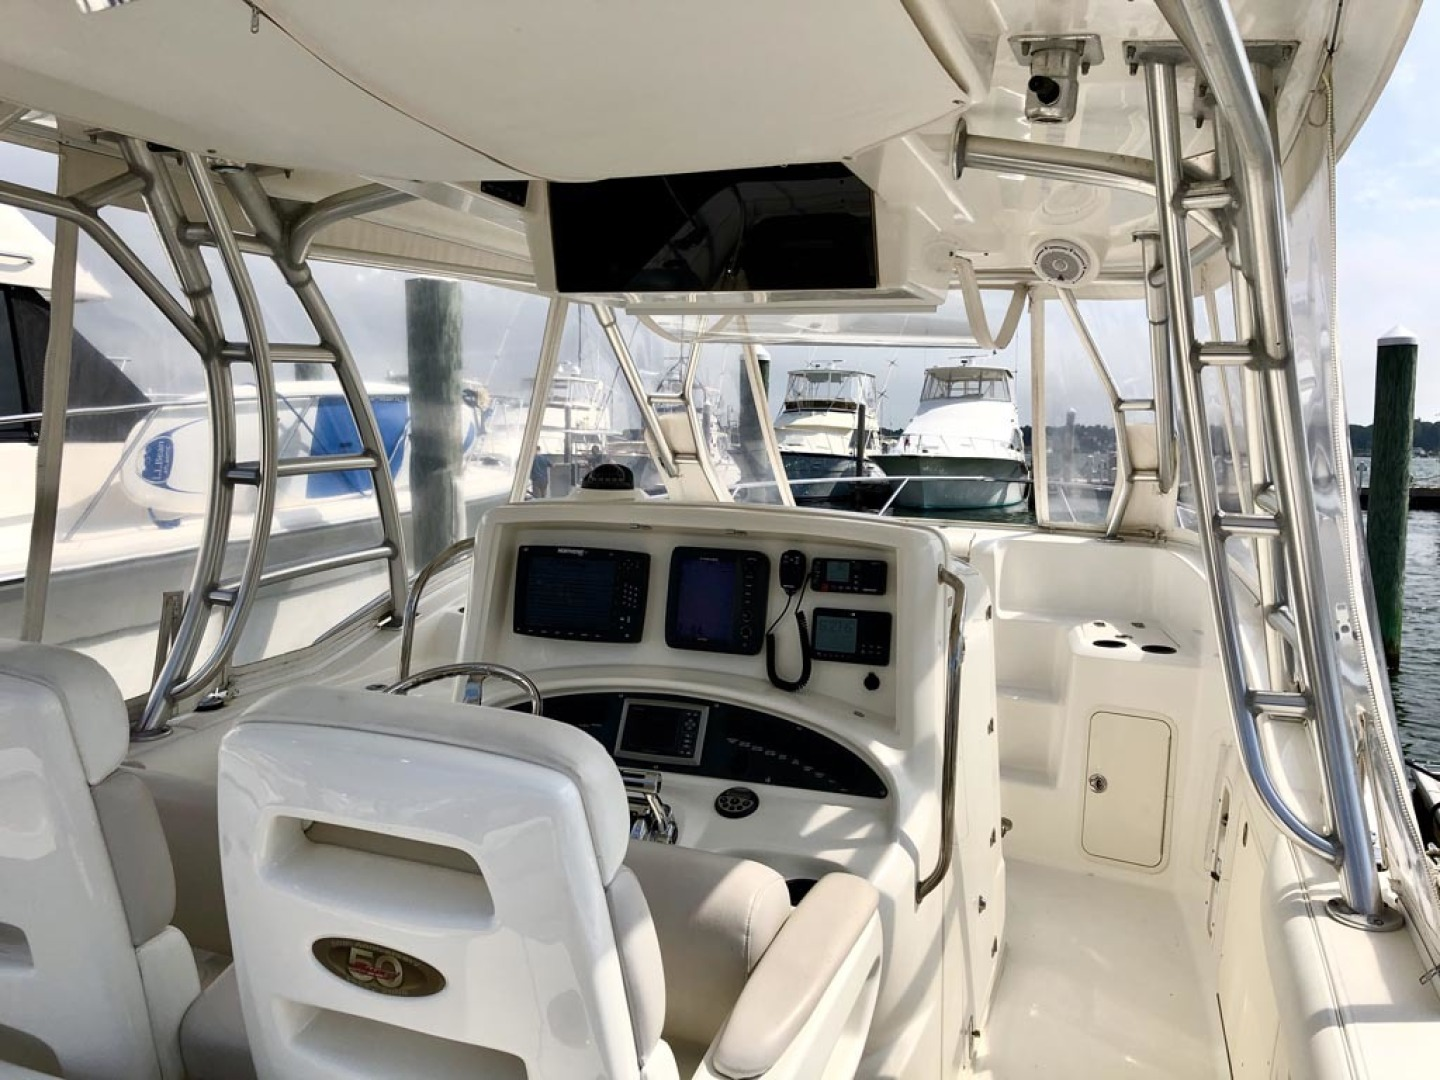 Boston Whaler-320 Outrage Cuddy Cabin 2008 -Onset-Massachusetts-United States-Helm Console-1447511 | Thumbnail